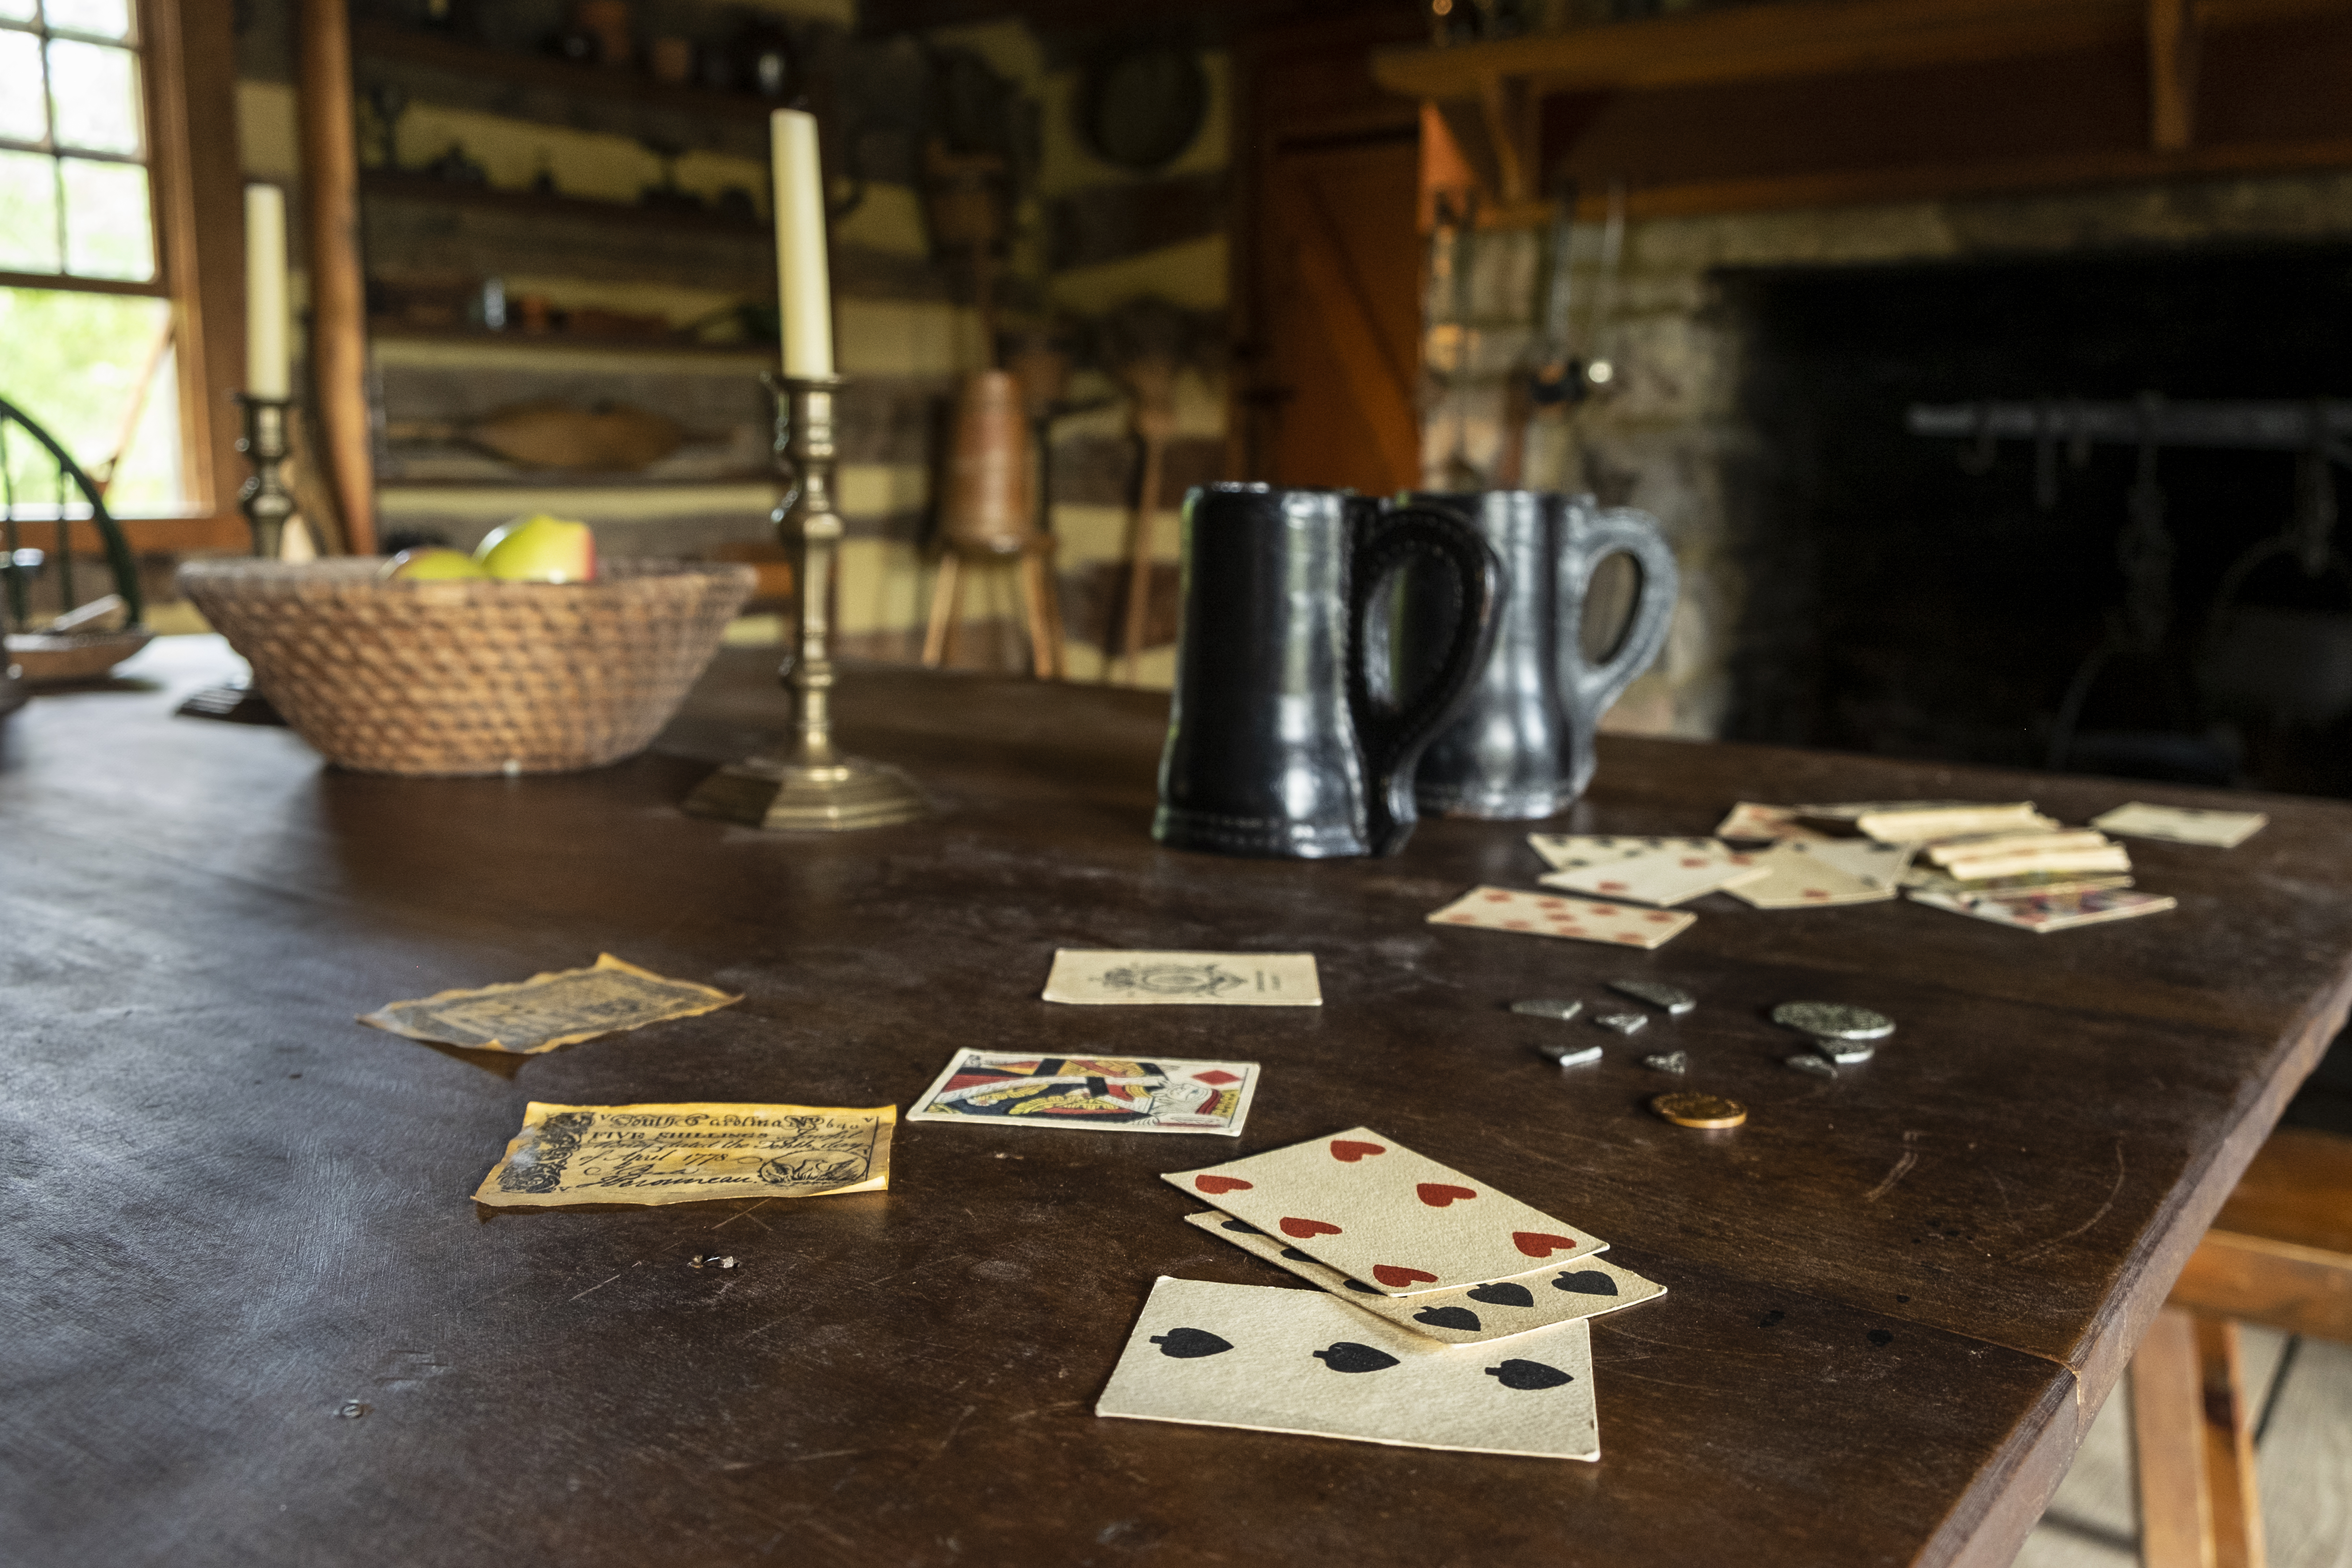 A game of cards on the tavern table